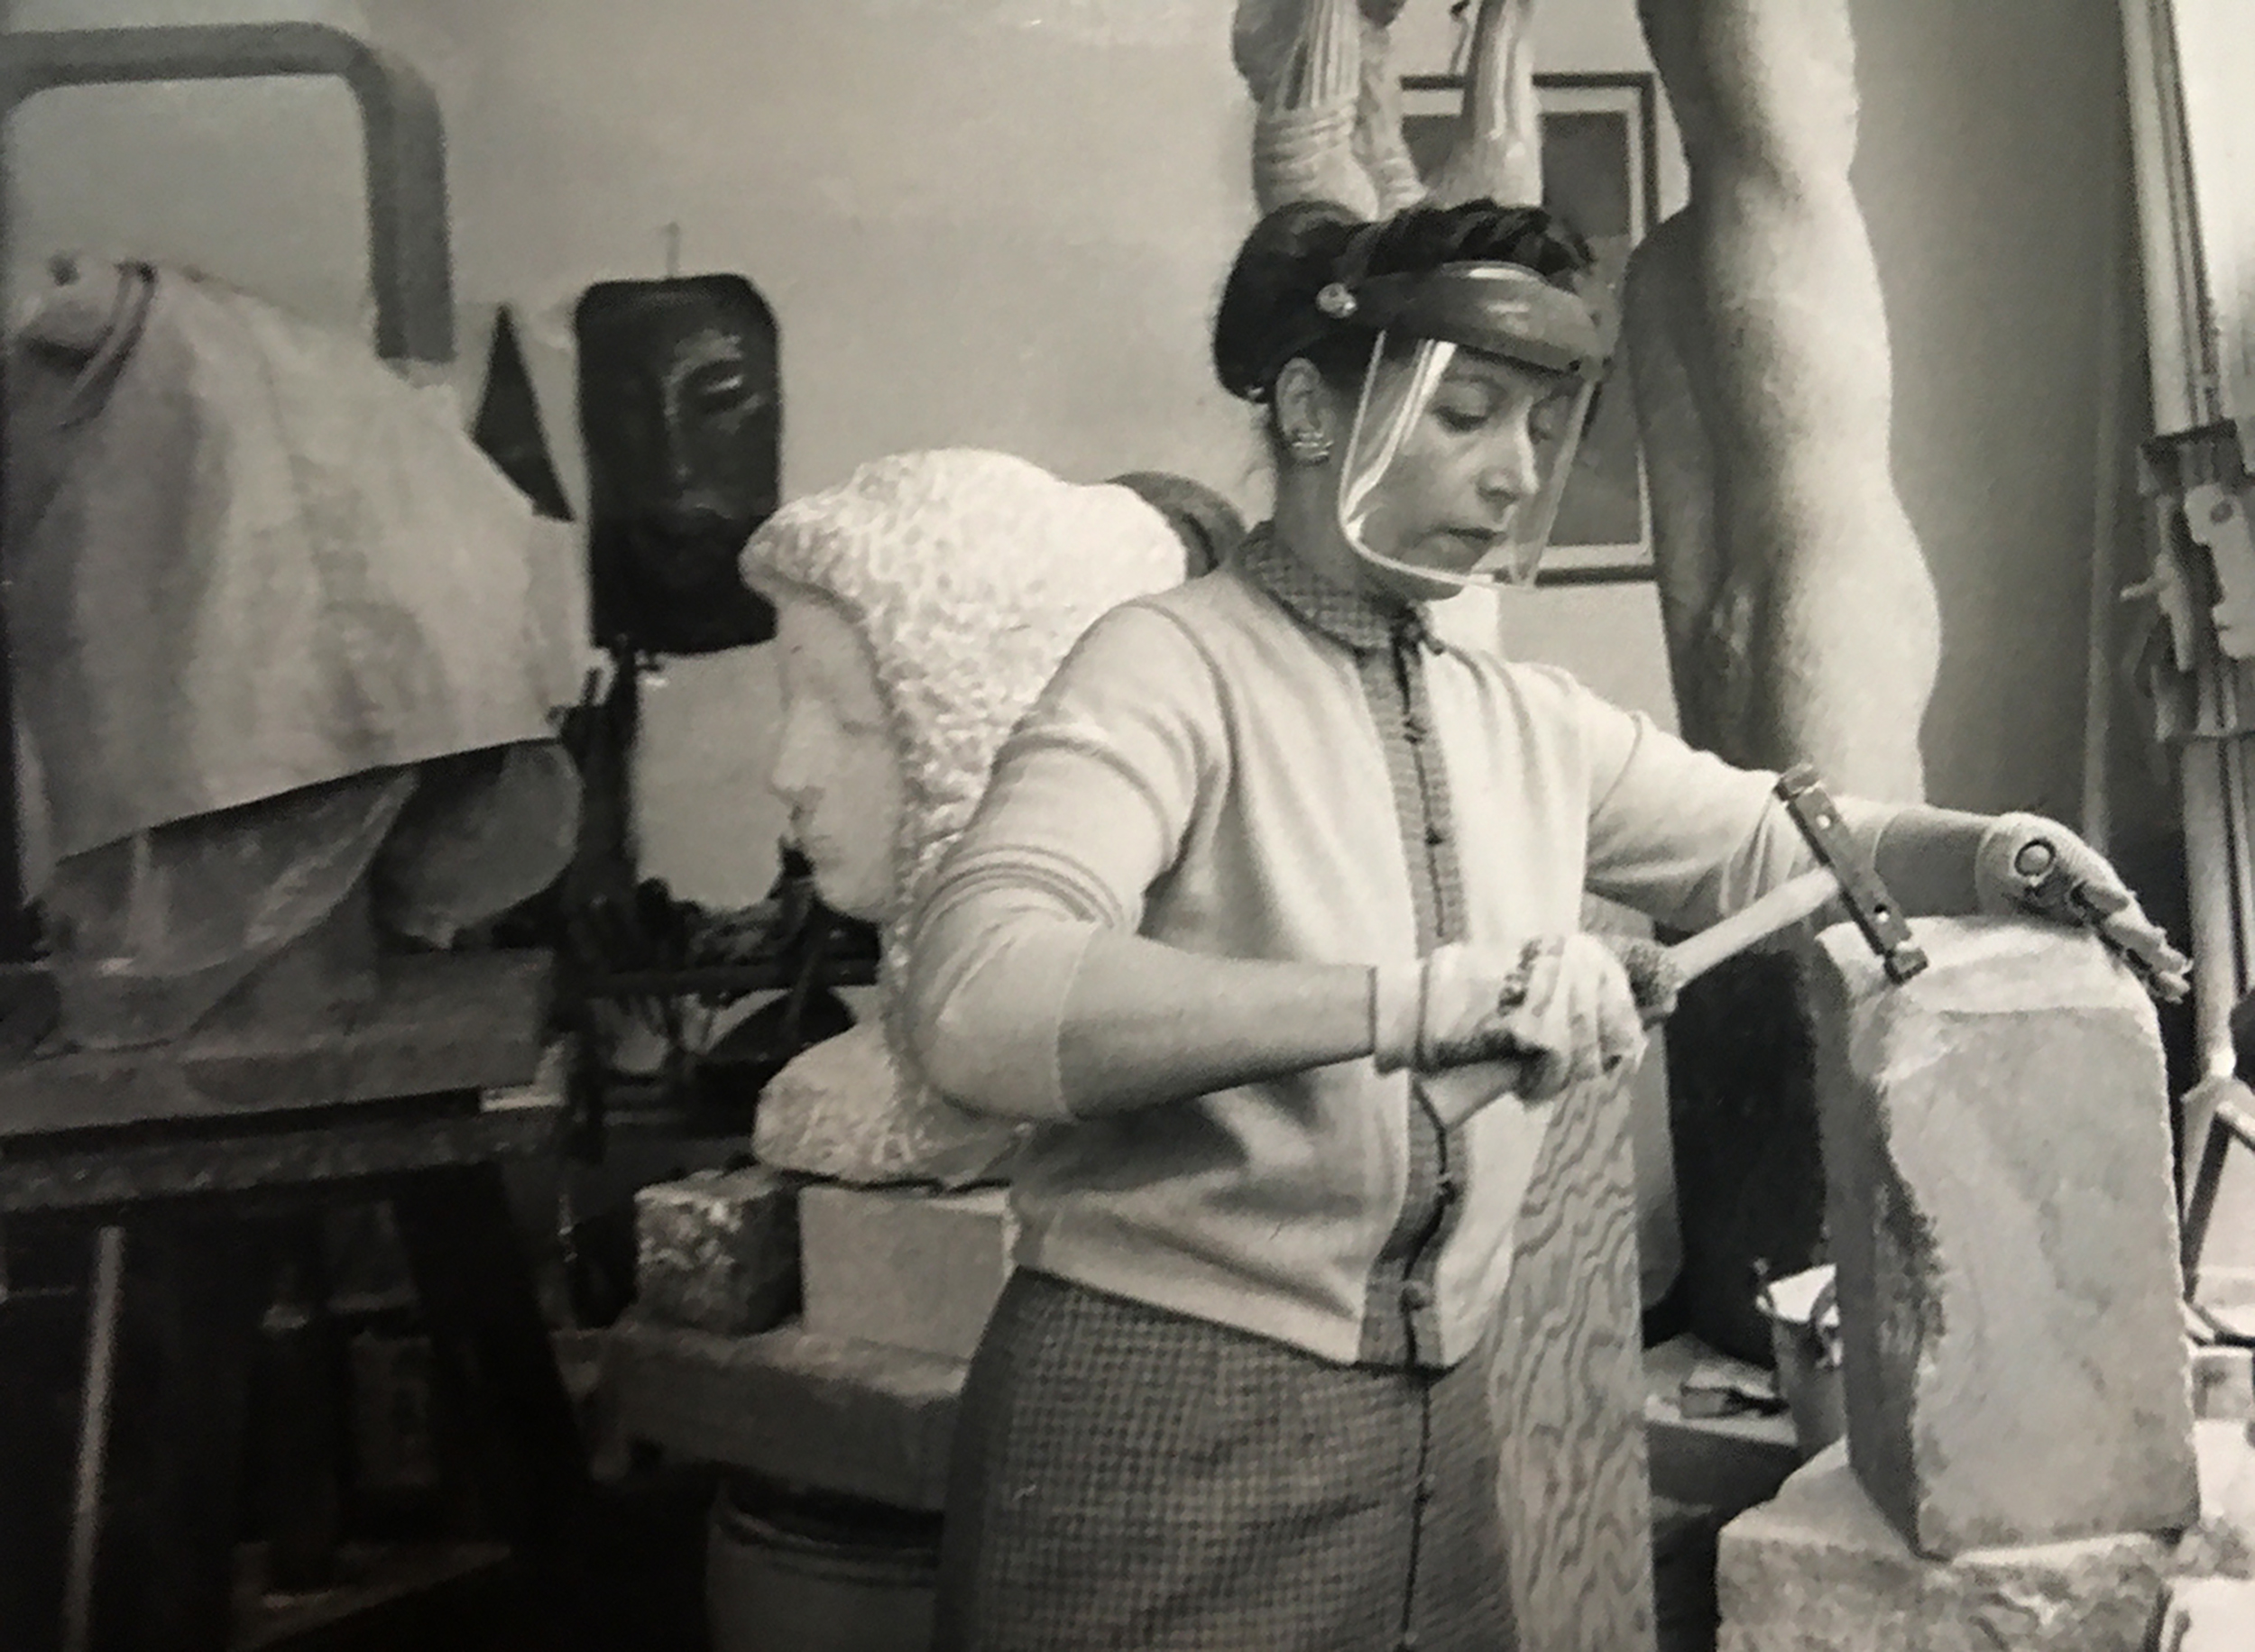 Naomi Feinberg sculpting in her studio